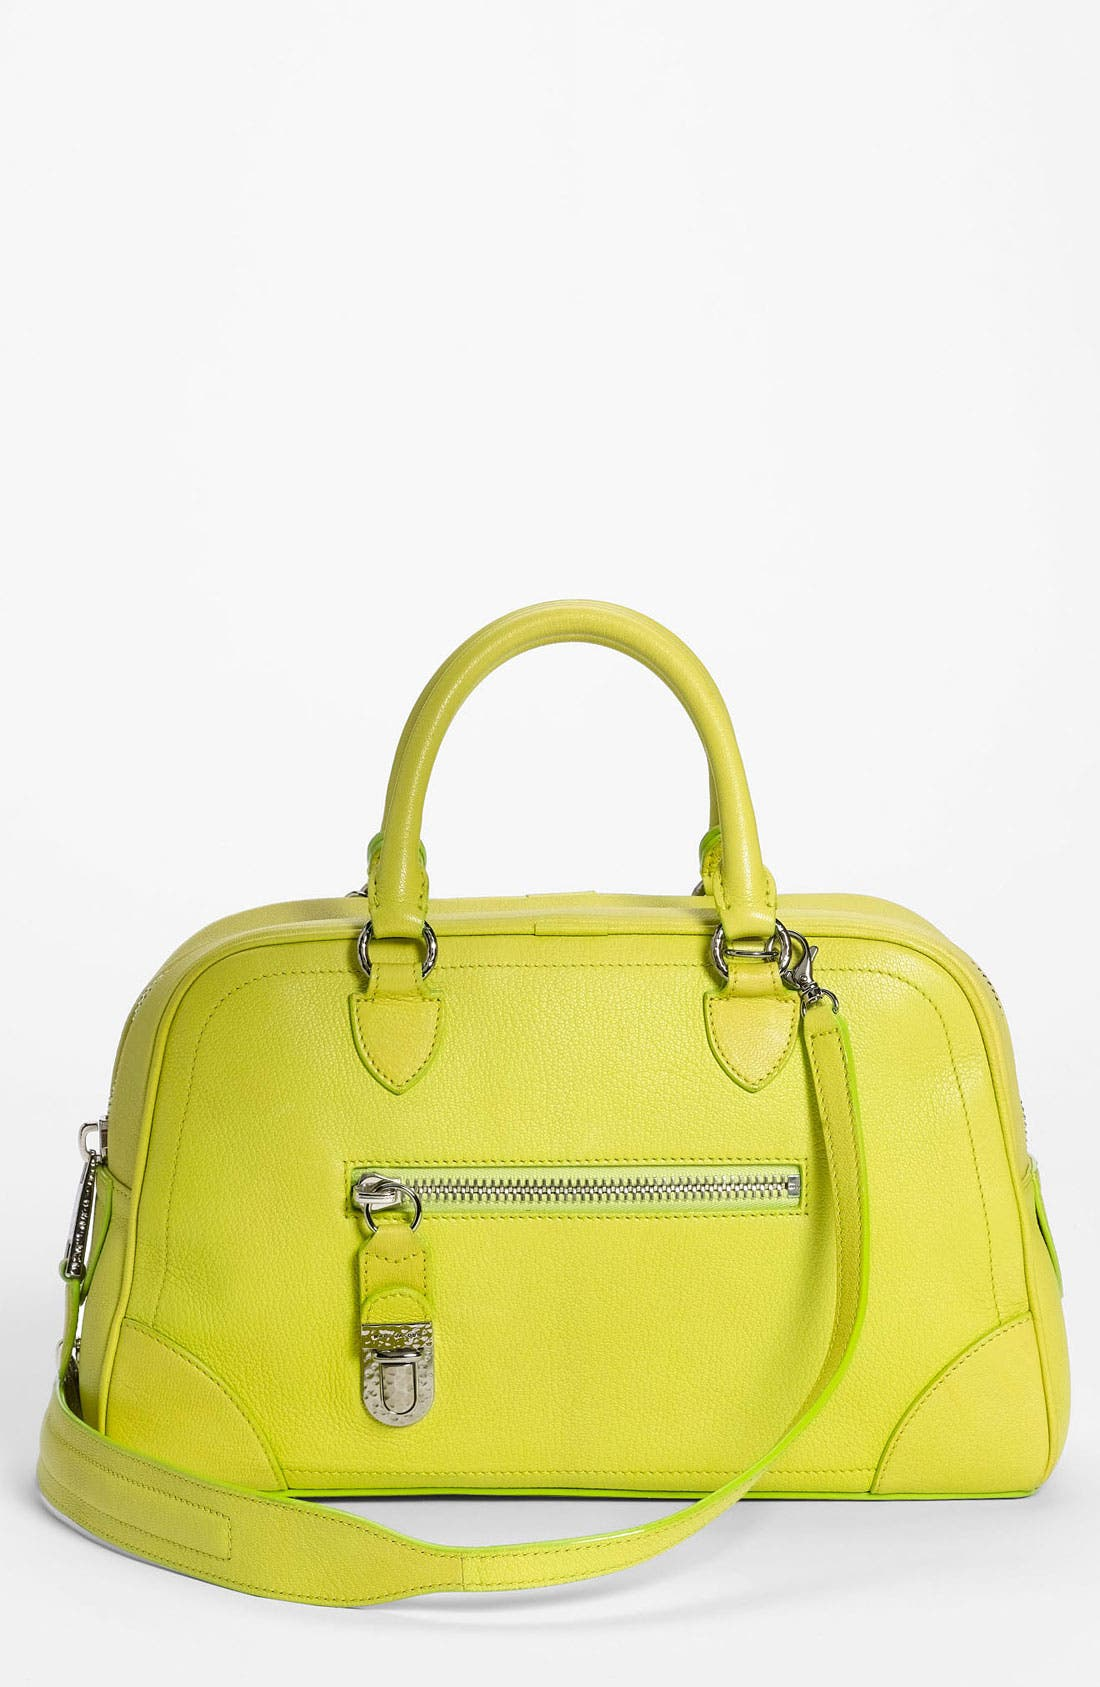 Main Image - MARC JACOBS 'Venetia - Small' Leather Satchel